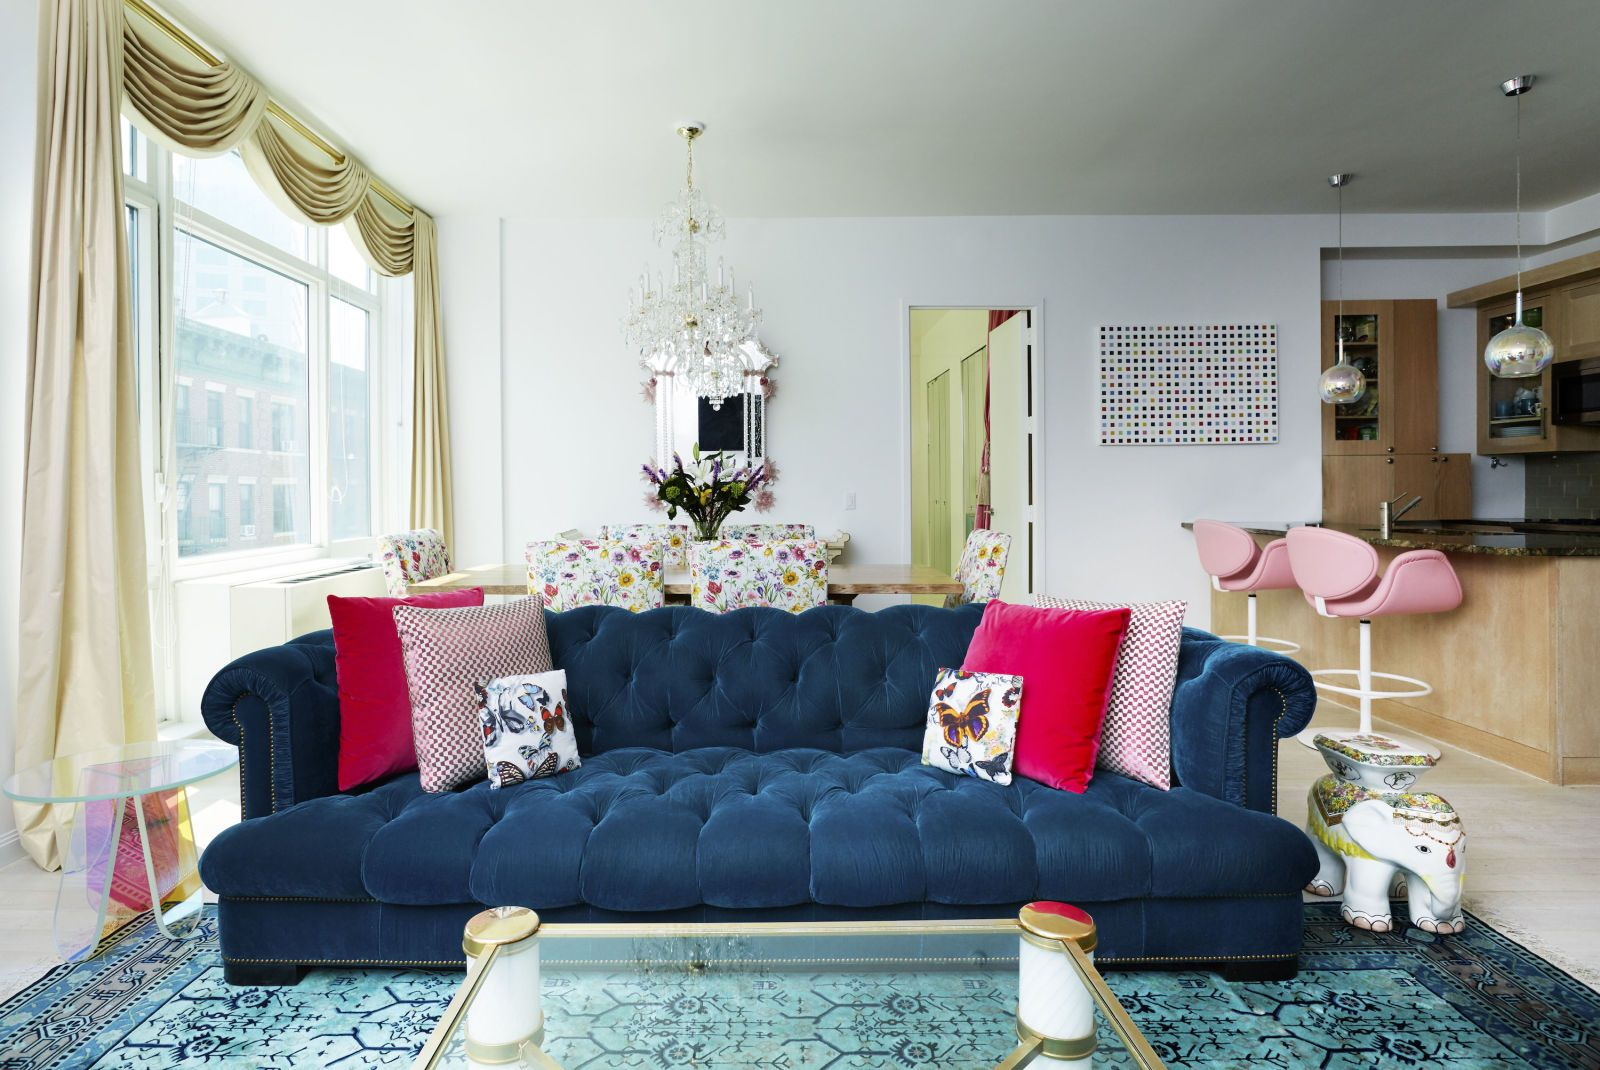 A Manhattan Socialite S Apartment Is The Whimsical Fairytale We Ve All Been Dreaming About Whimsical Living Room Furniture Whimsical Living Room Decor Whimsical living room decor